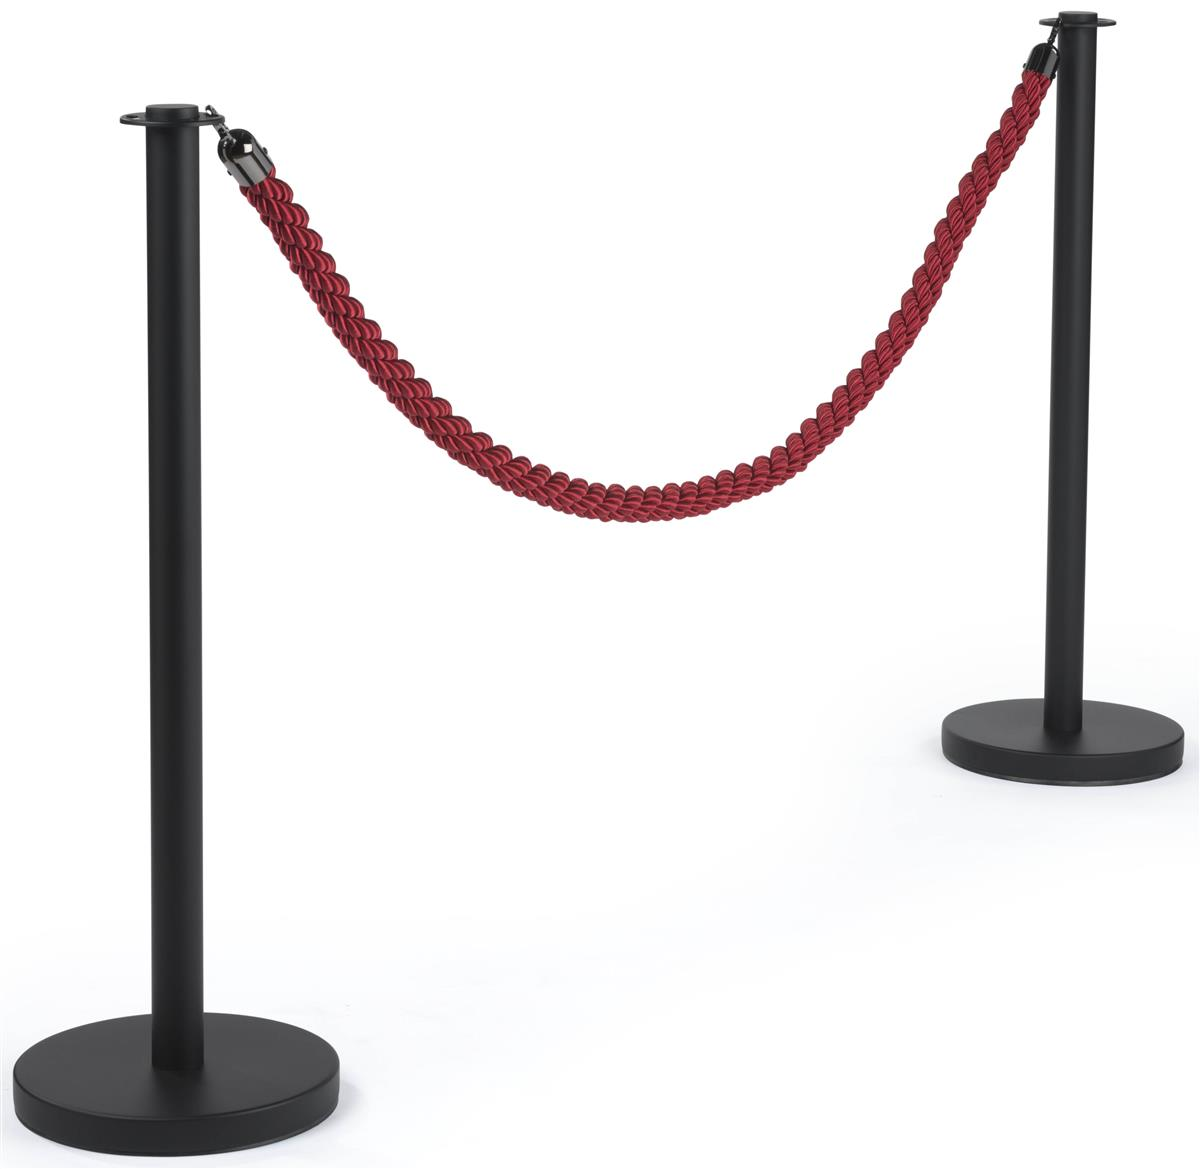 Red Rope Barrier Twisted Nylon With Black End Hooks